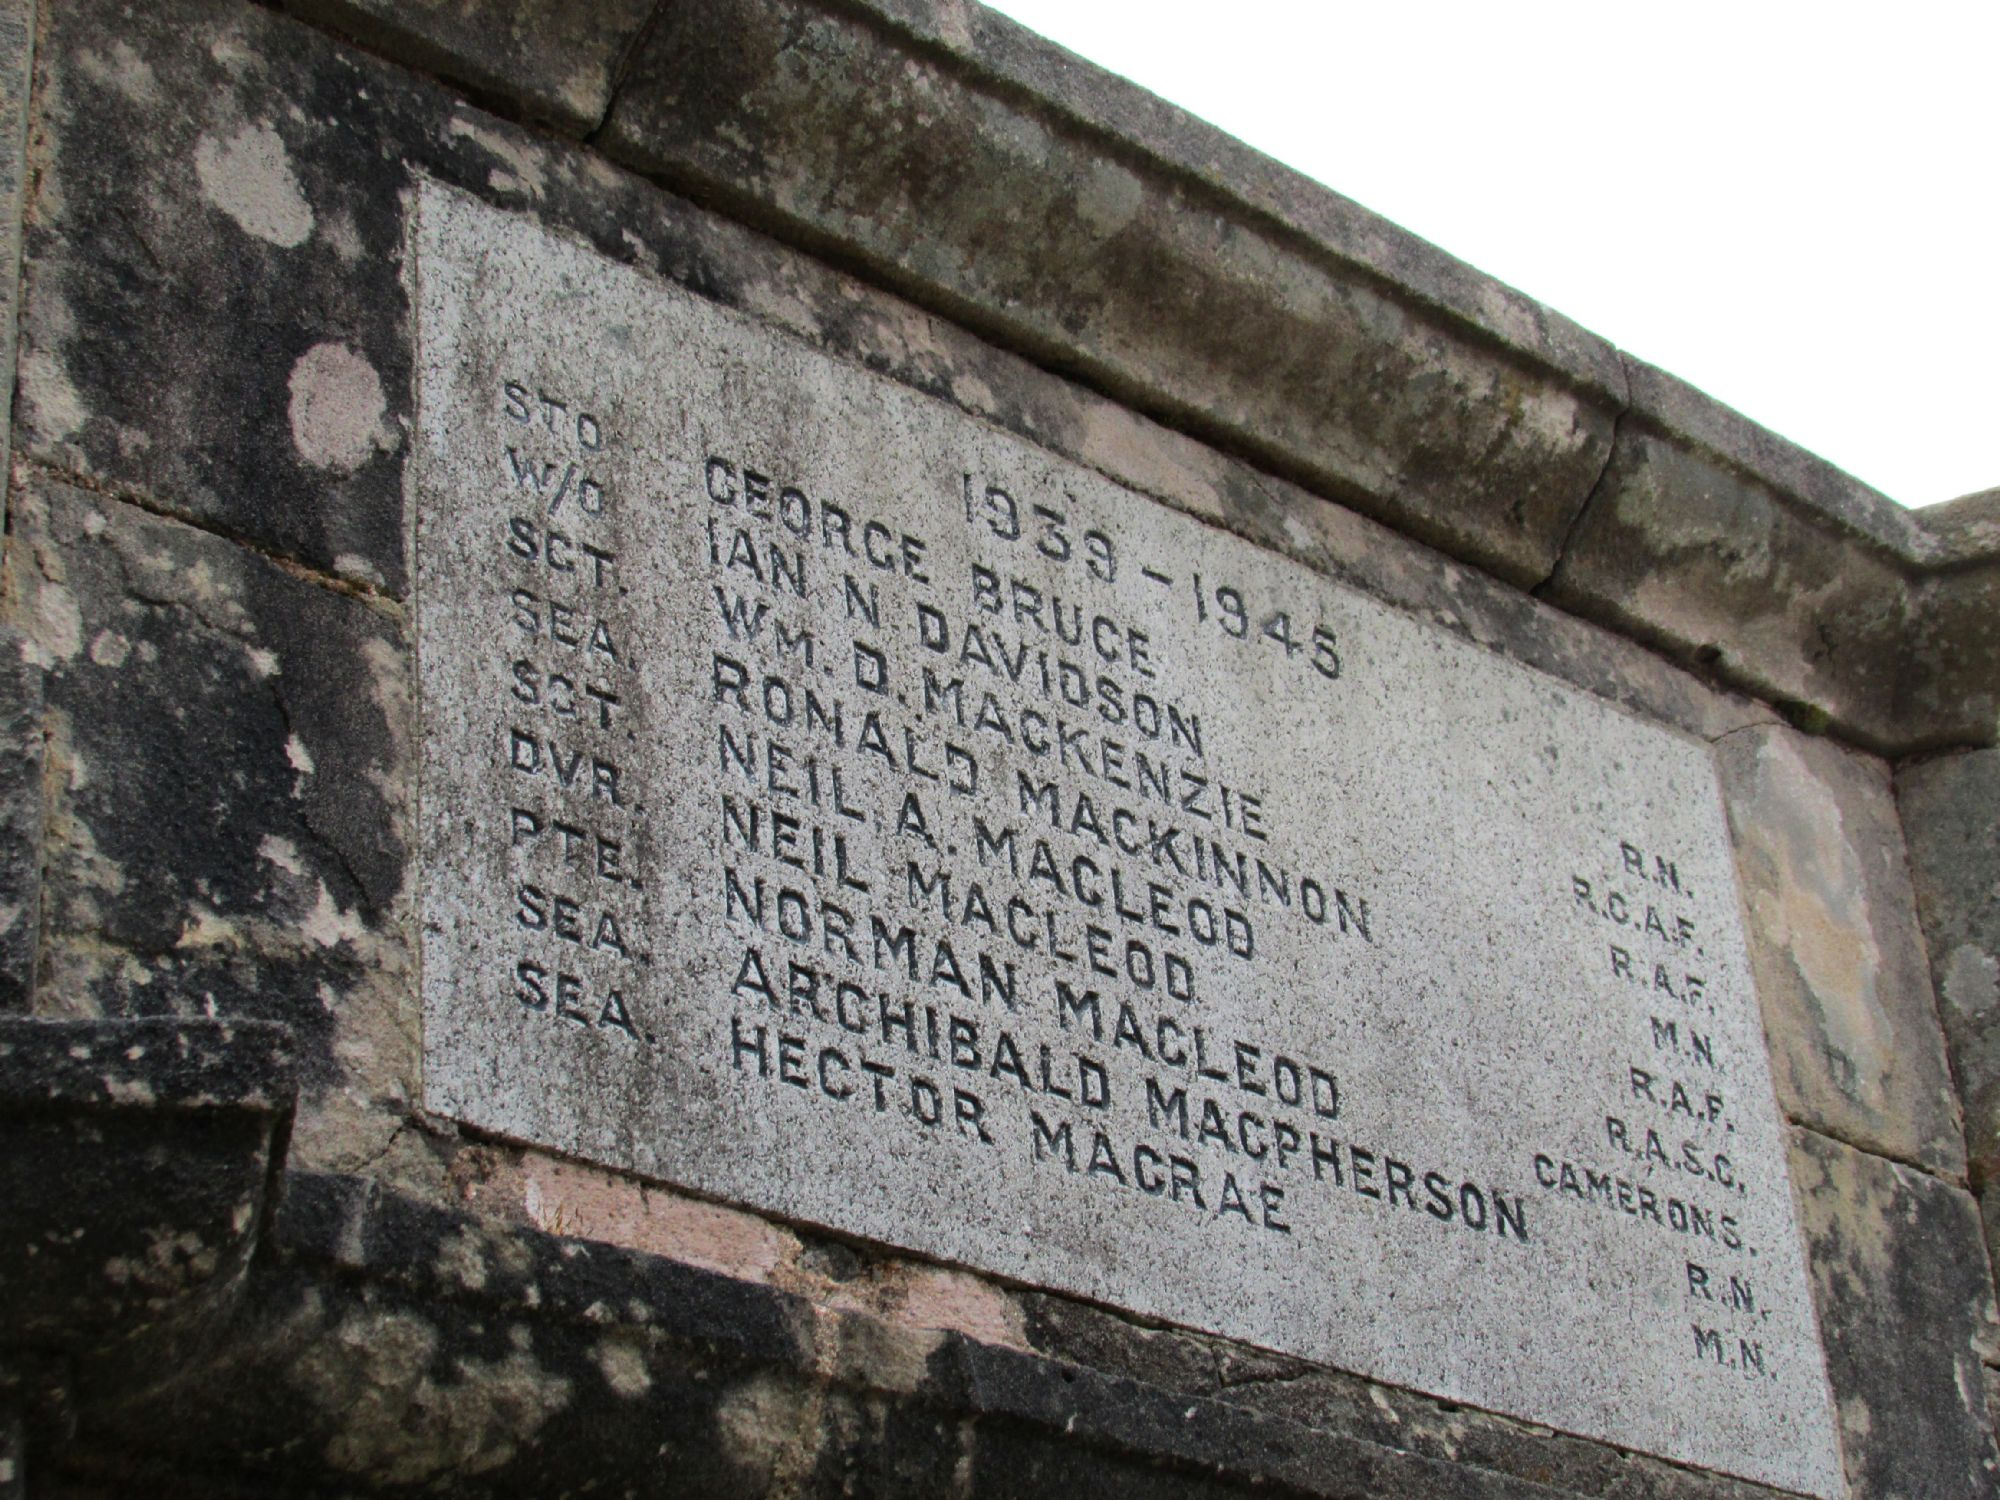 WWII memorial in Portree